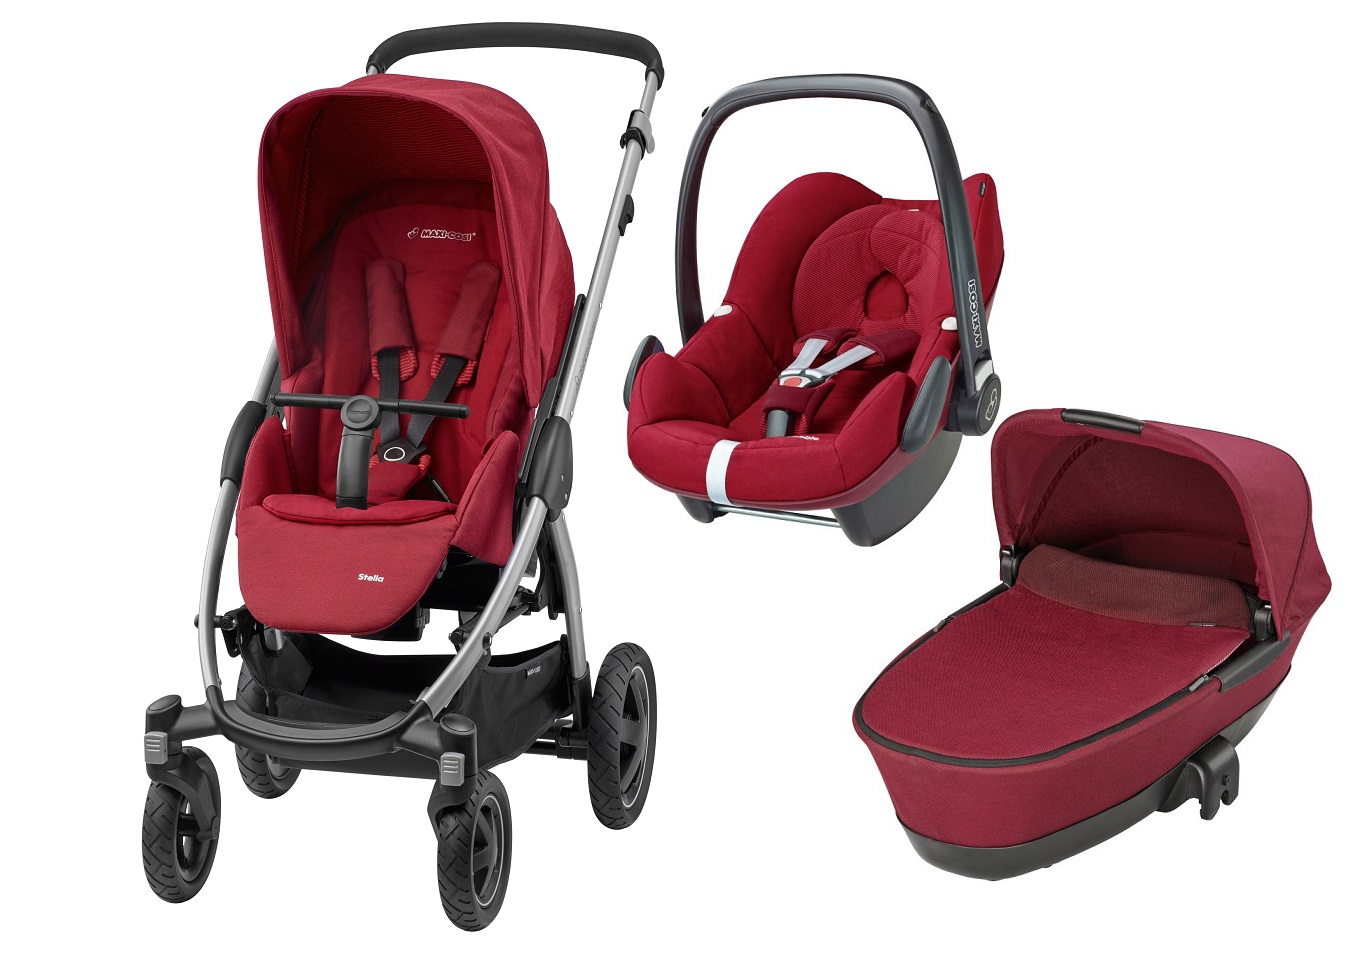 maxi cosi stella inkl kinderwagen aufsatz babyschale pebble 2017 robin red online kaufen bei. Black Bedroom Furniture Sets. Home Design Ideas